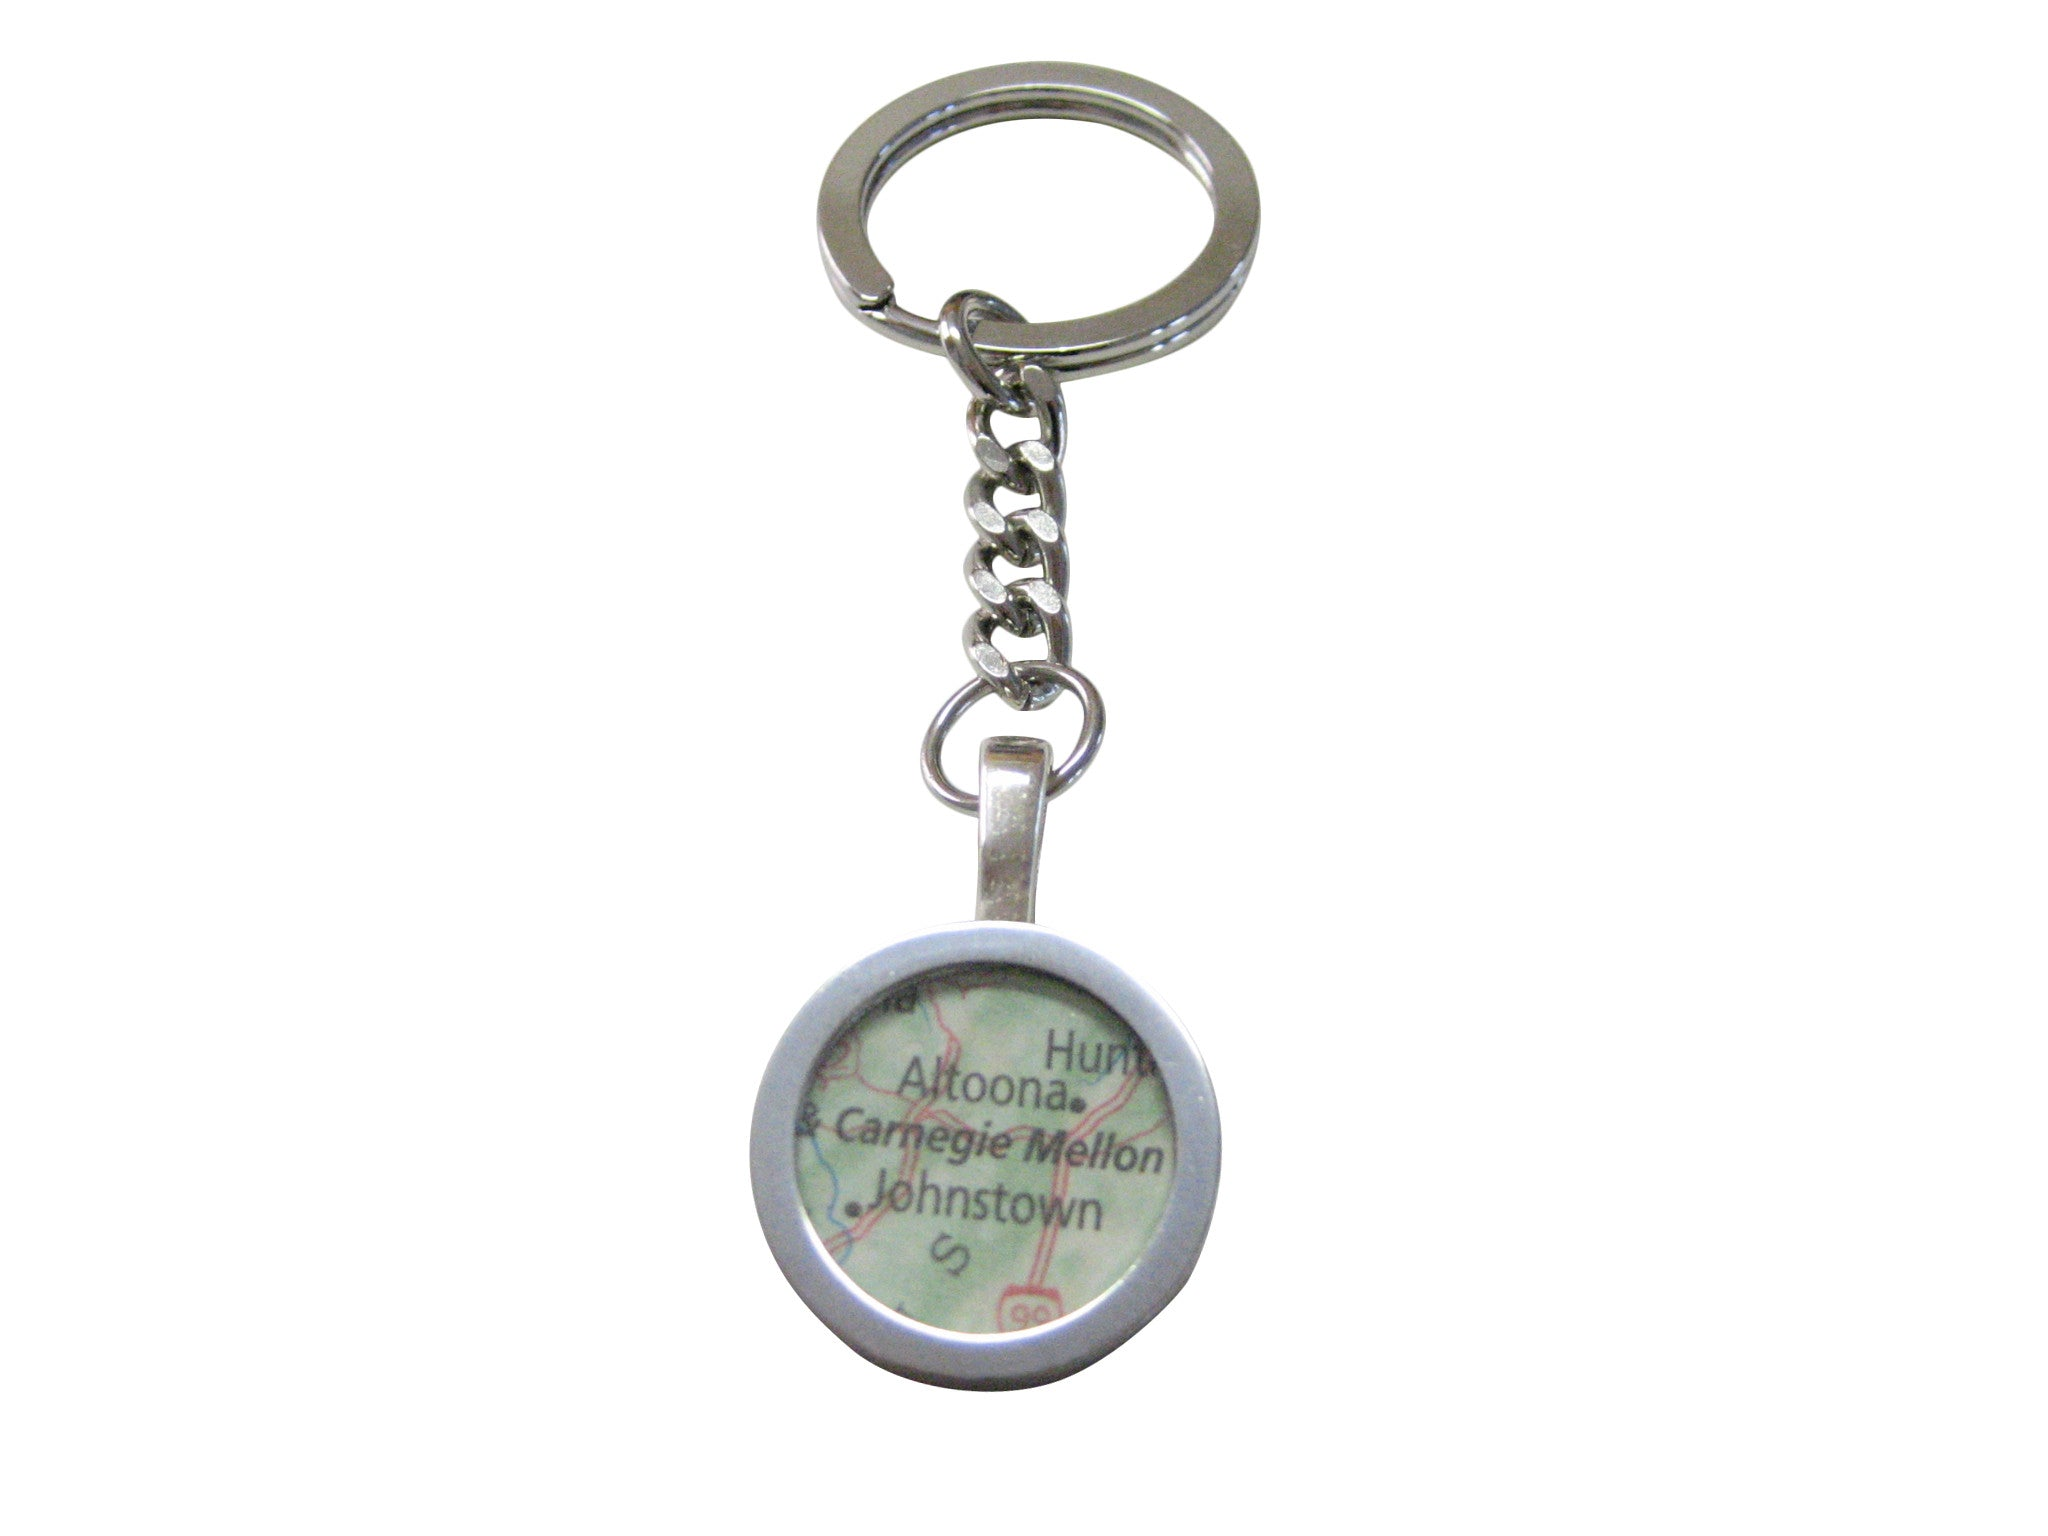 Carnegie Mellon University Map Pendant Keychain